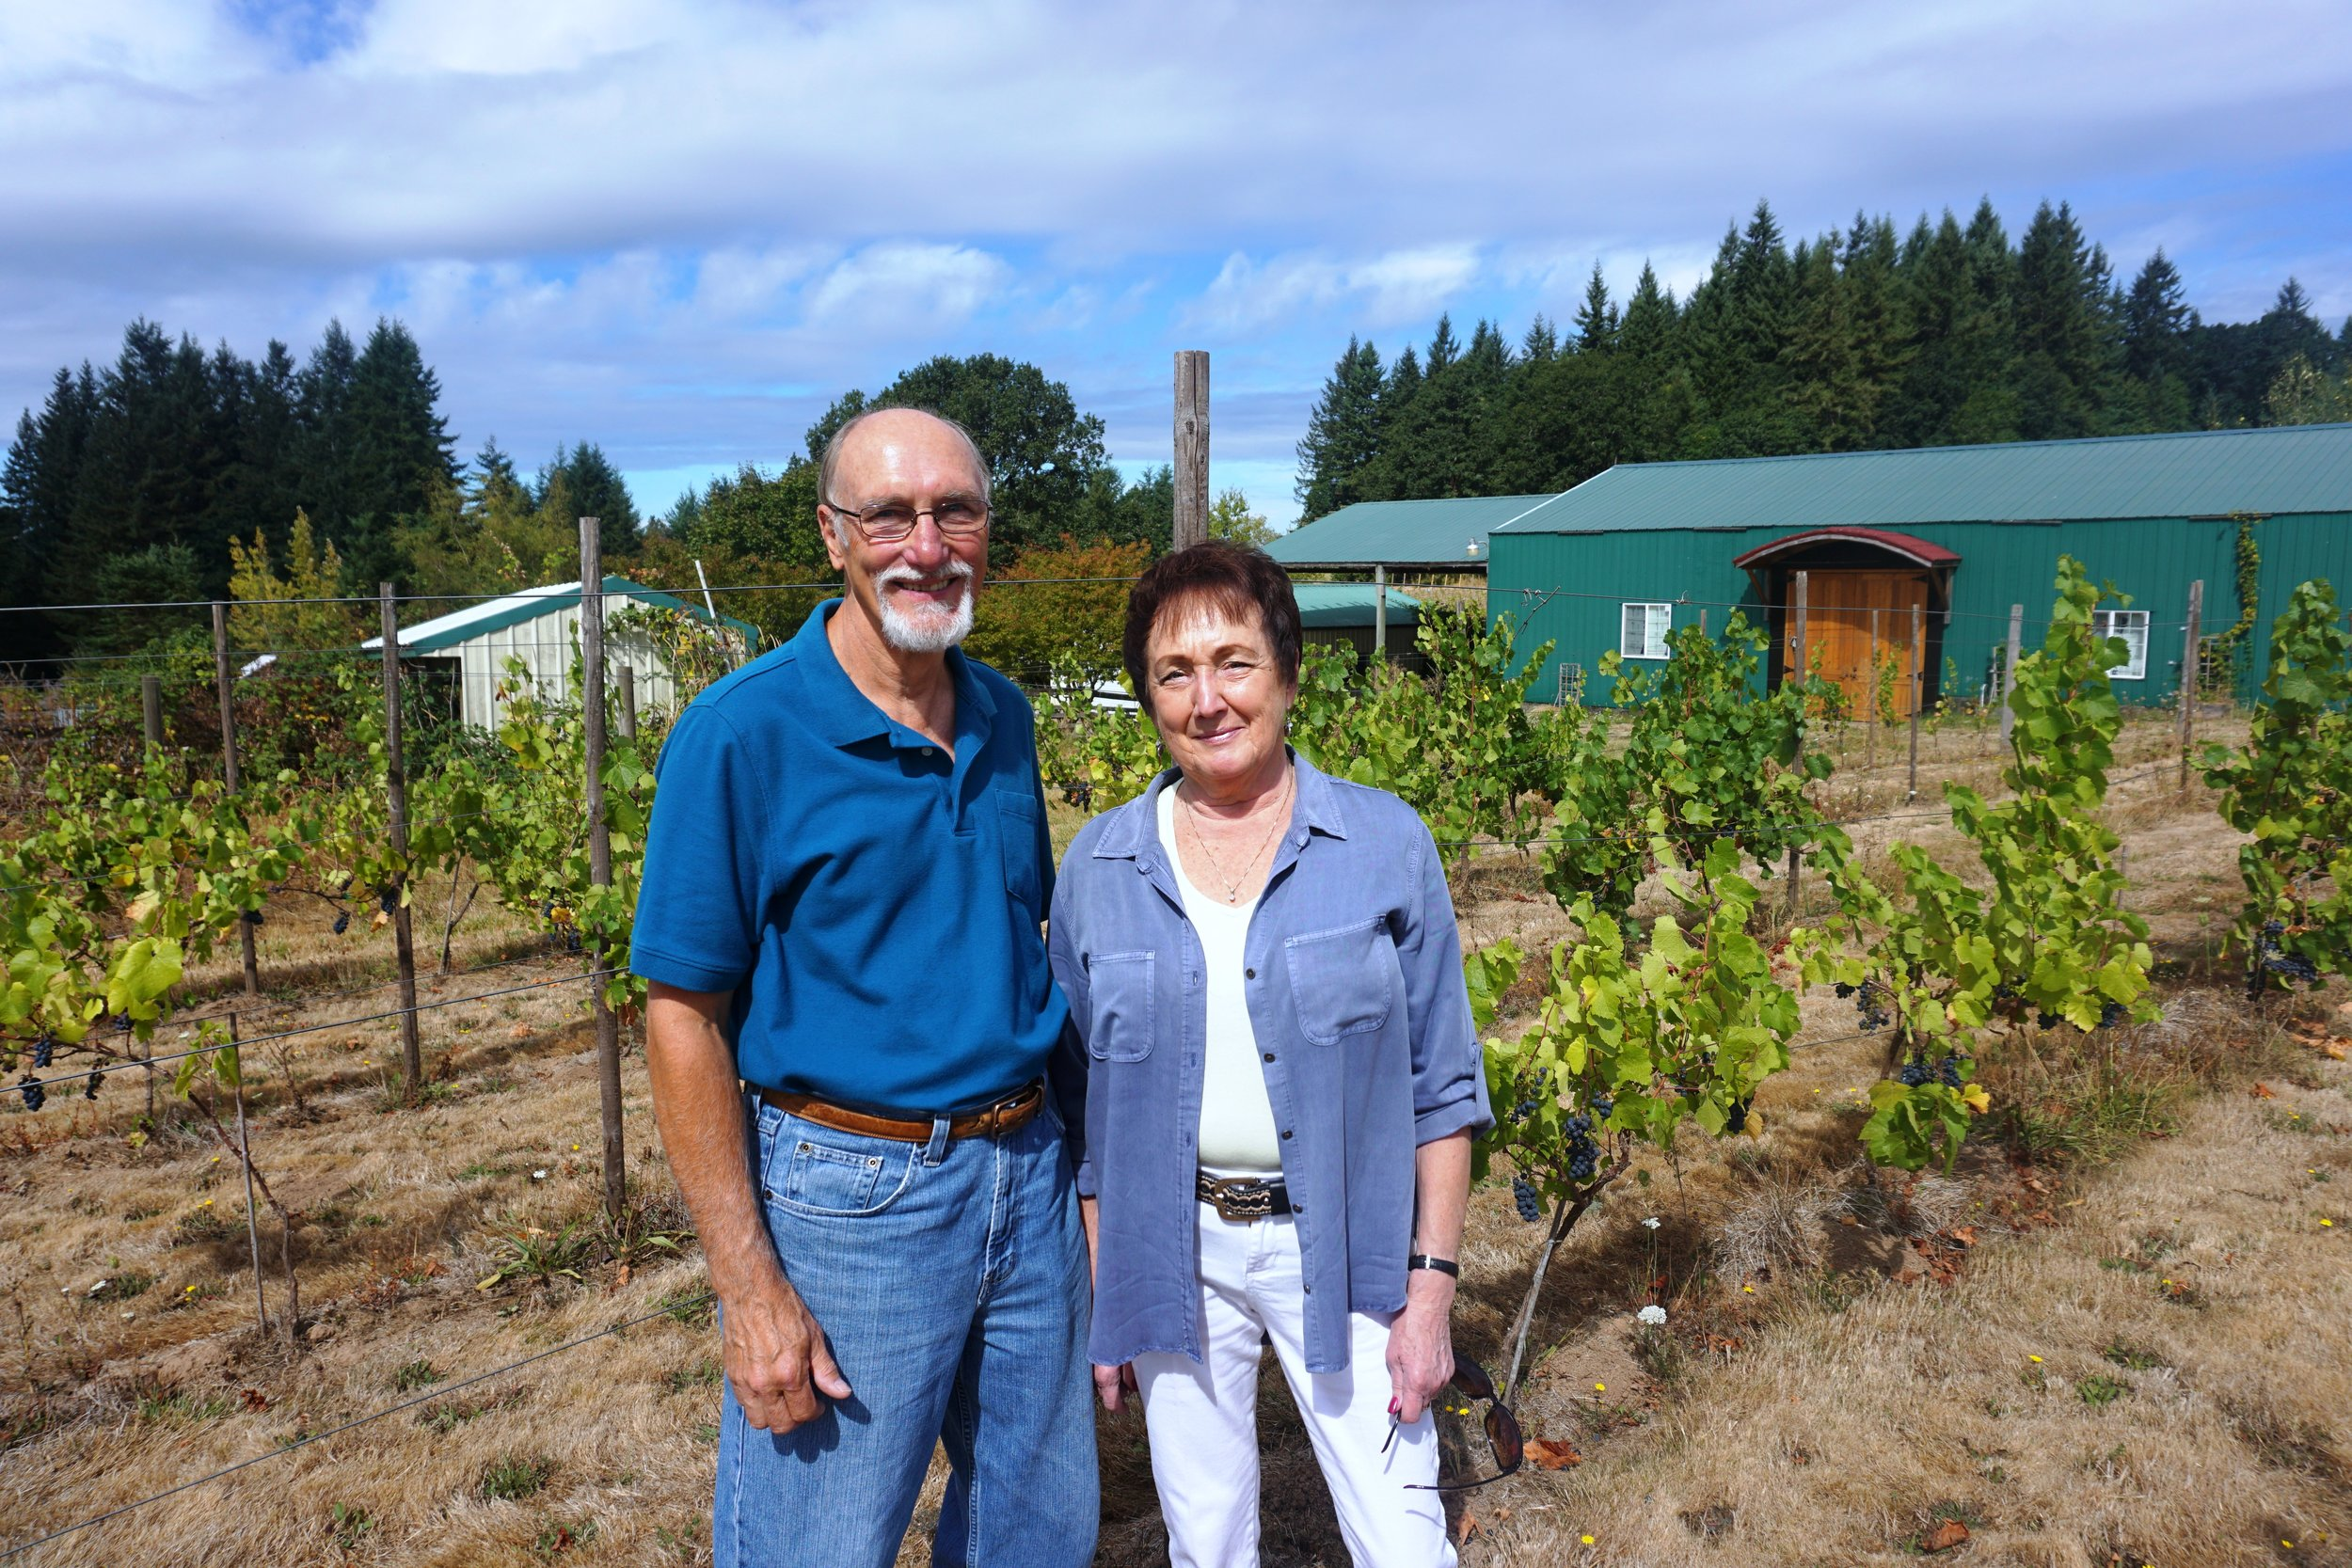 Rezabek Vineyard owners, Roger Rezabek and Donna Anderson, have been hard at work planting grape vines at their Battle Ground vineyard since the spring of 2010. Viki Eierdam